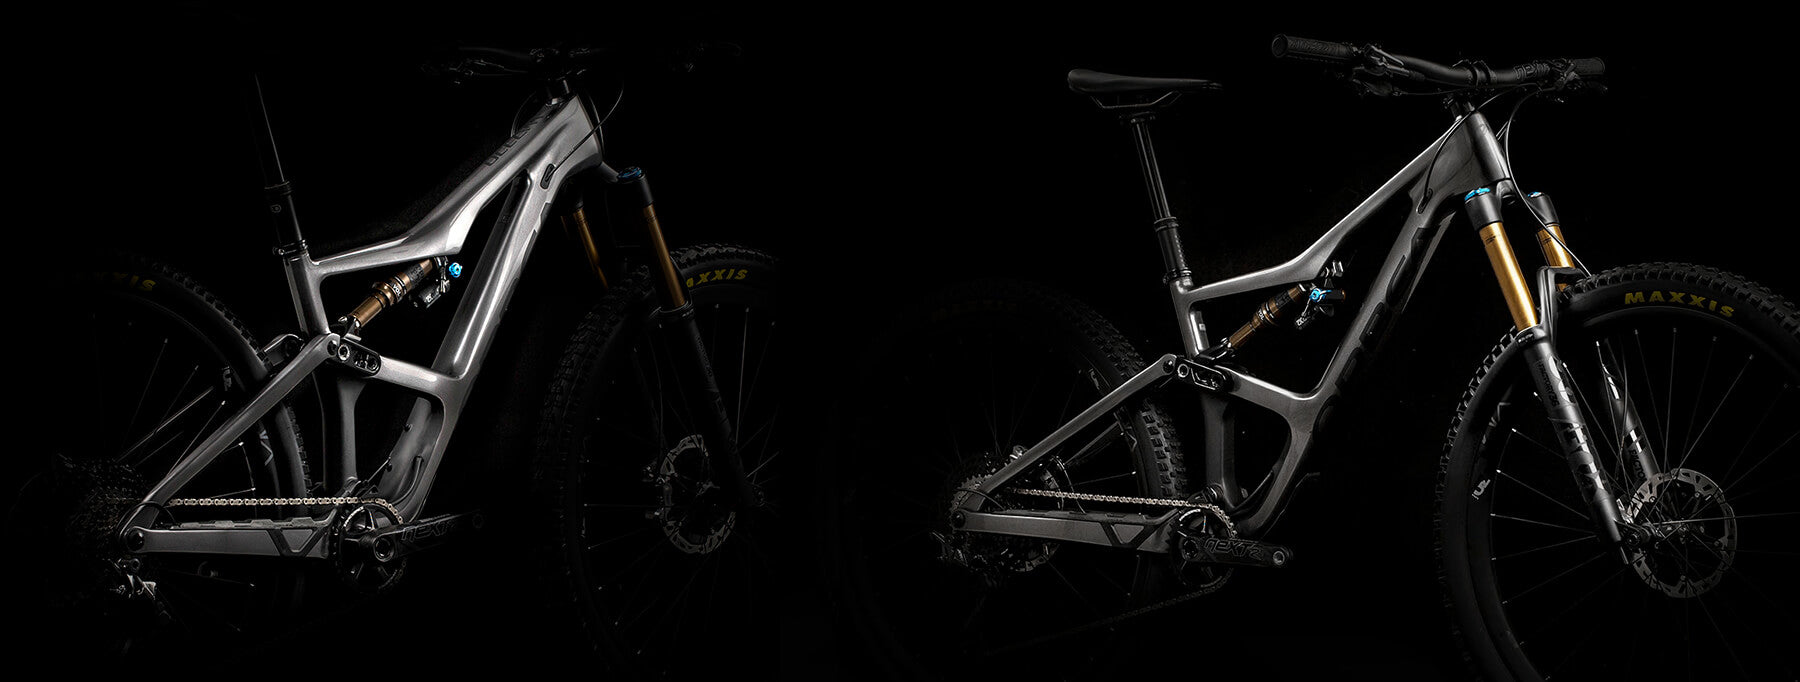 2020 Orbea Occam Suspension - Contender Bicycles